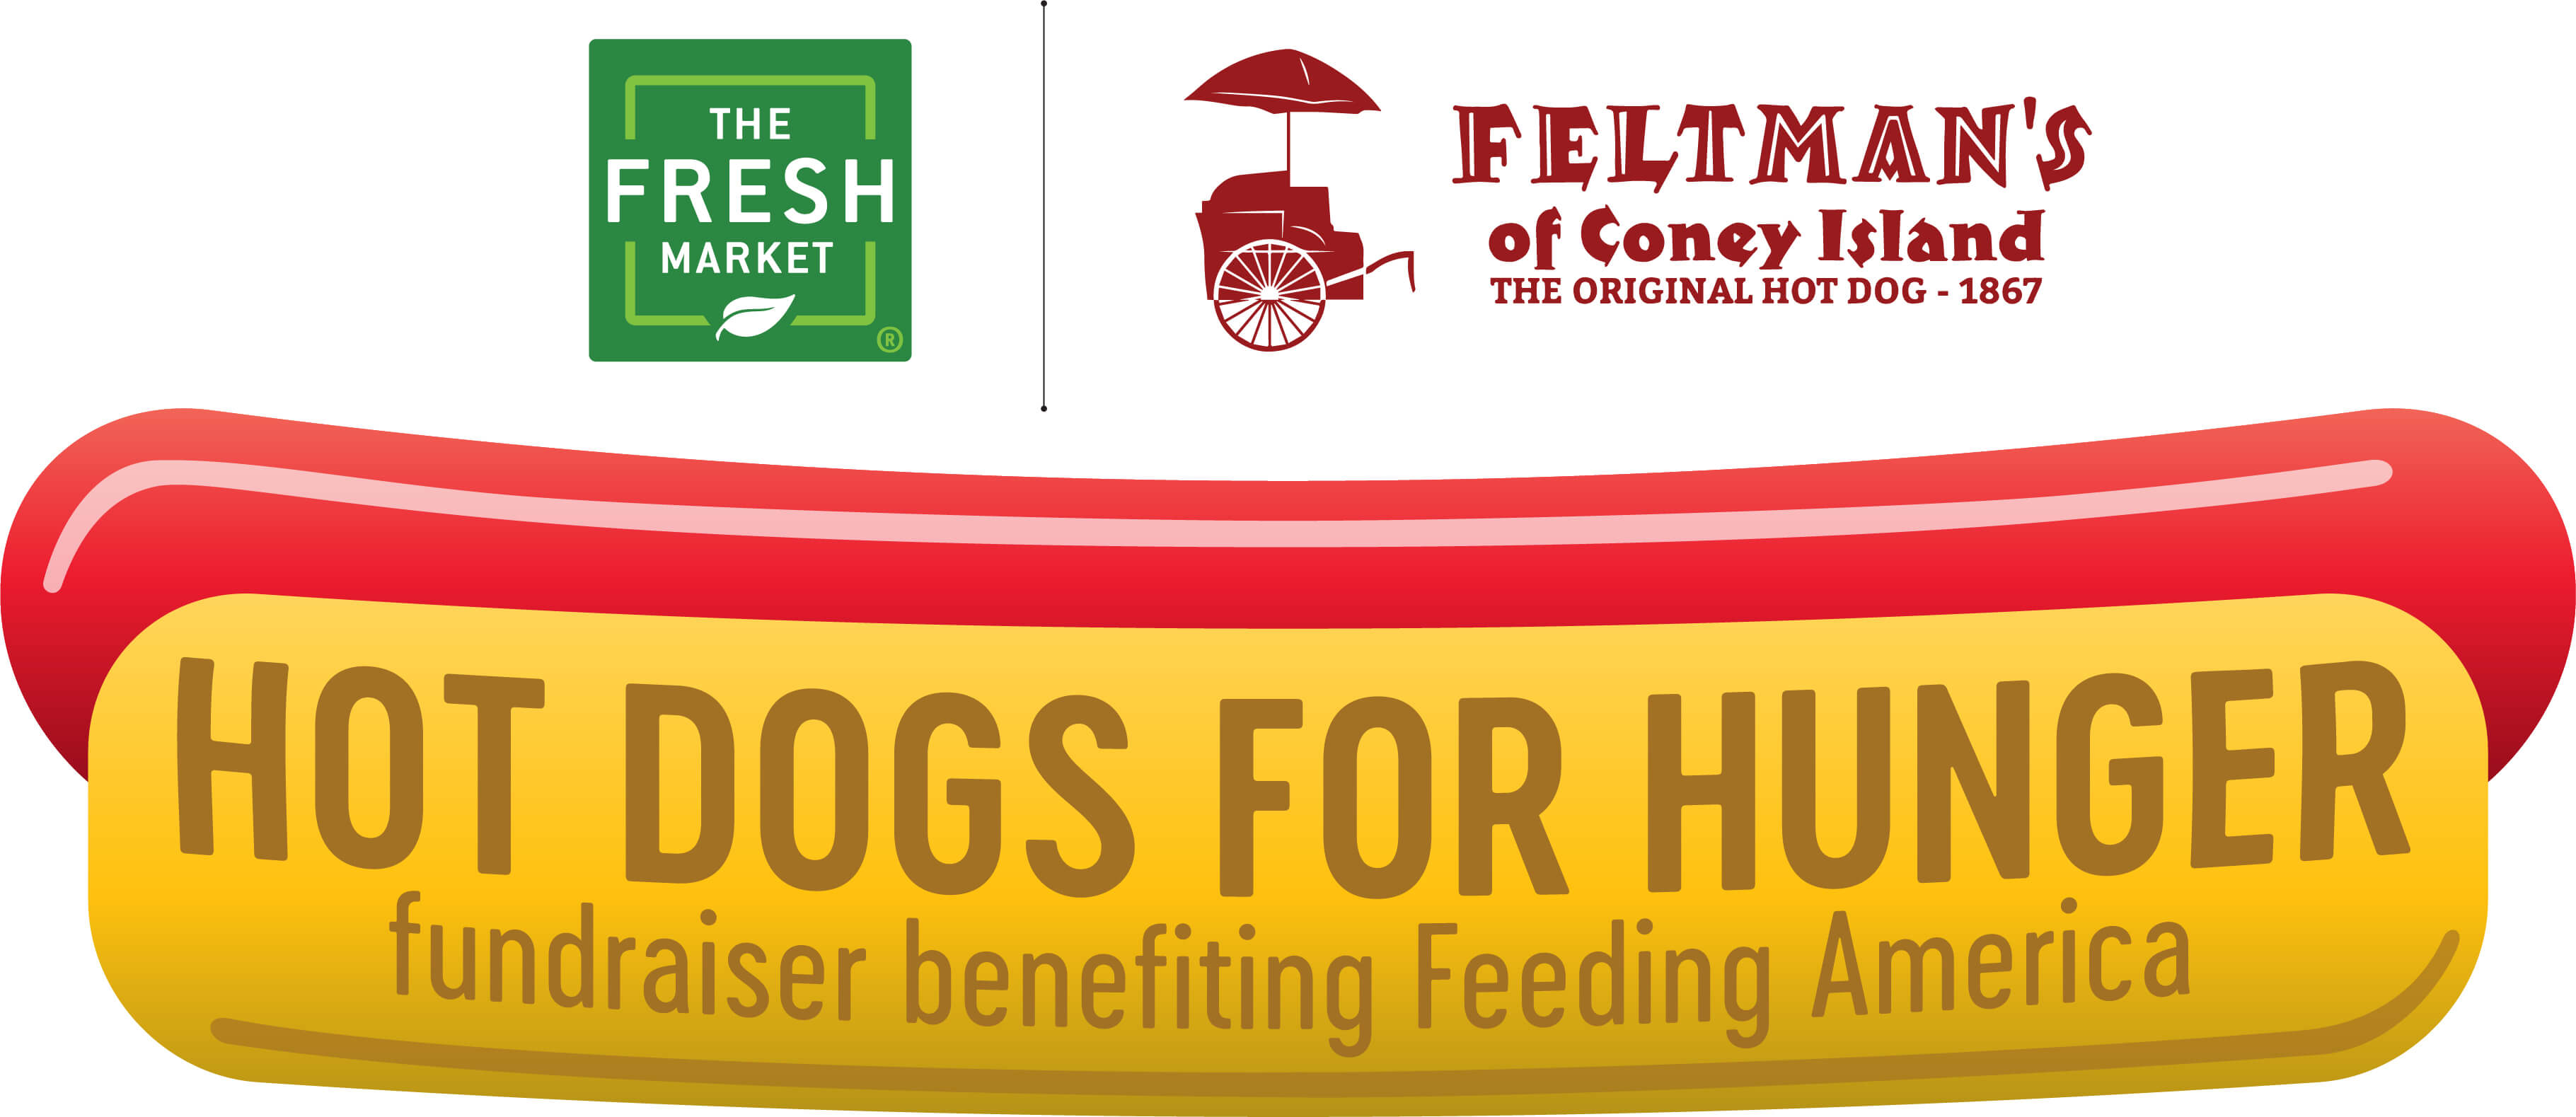 Hot Dogs For Hunger Logo